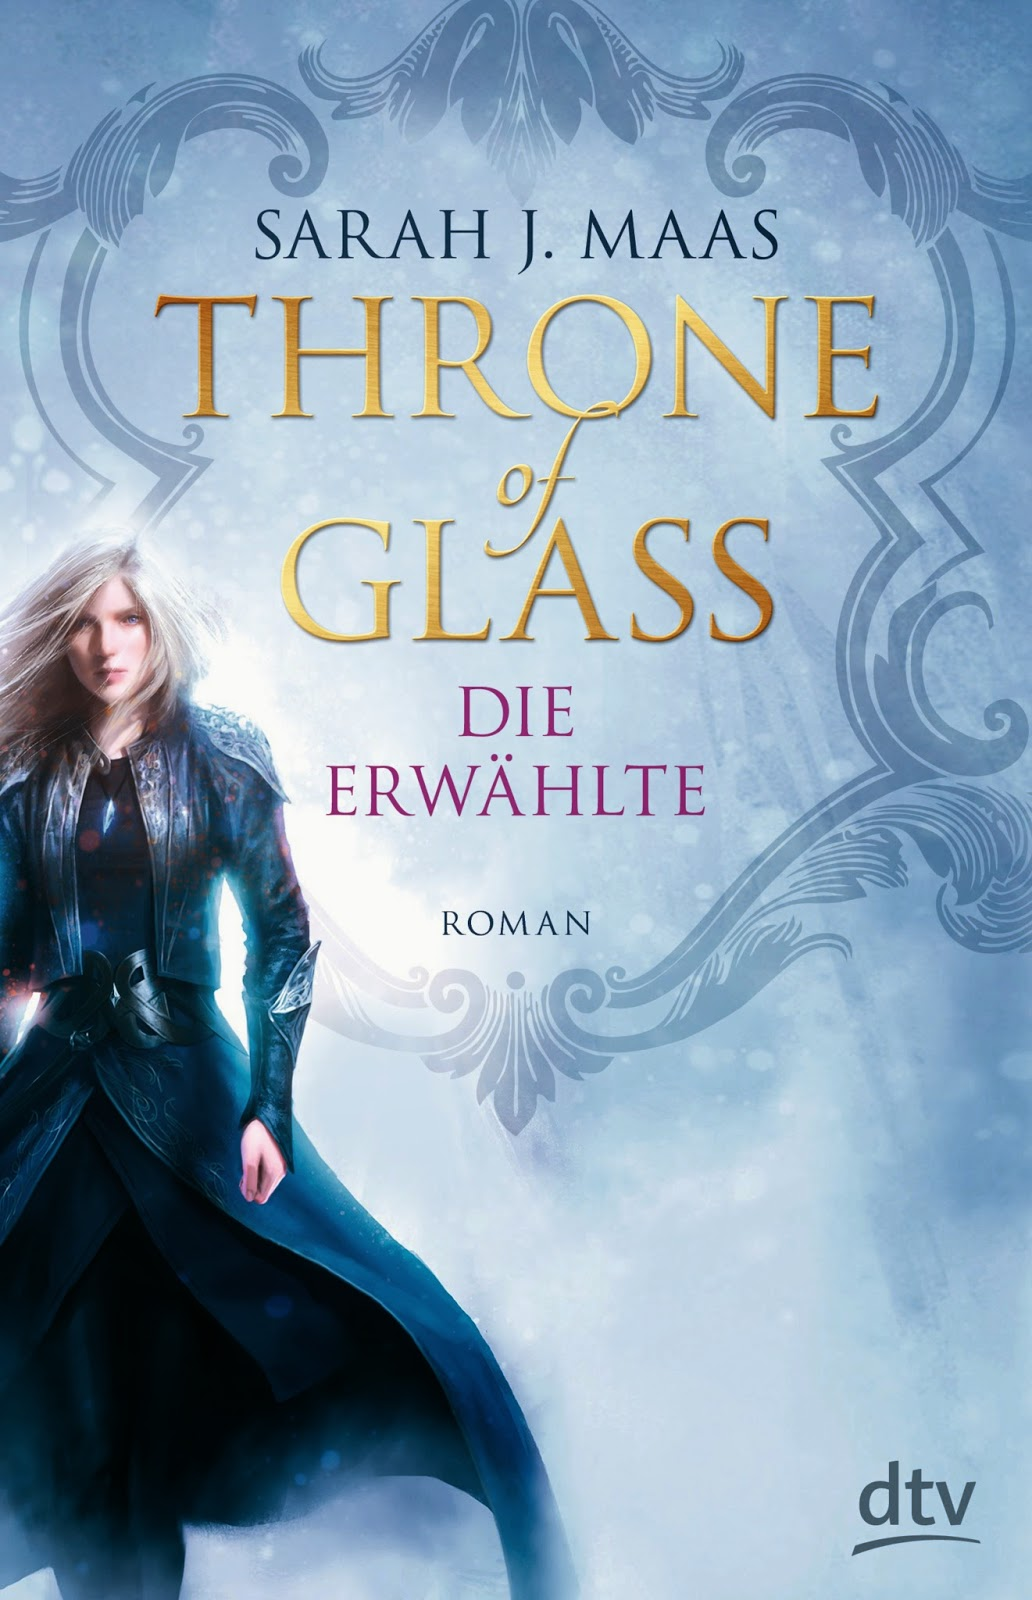 http://www.dtv.de/buecher/throne_of_glass_-_die_erwaehlte_76078.html